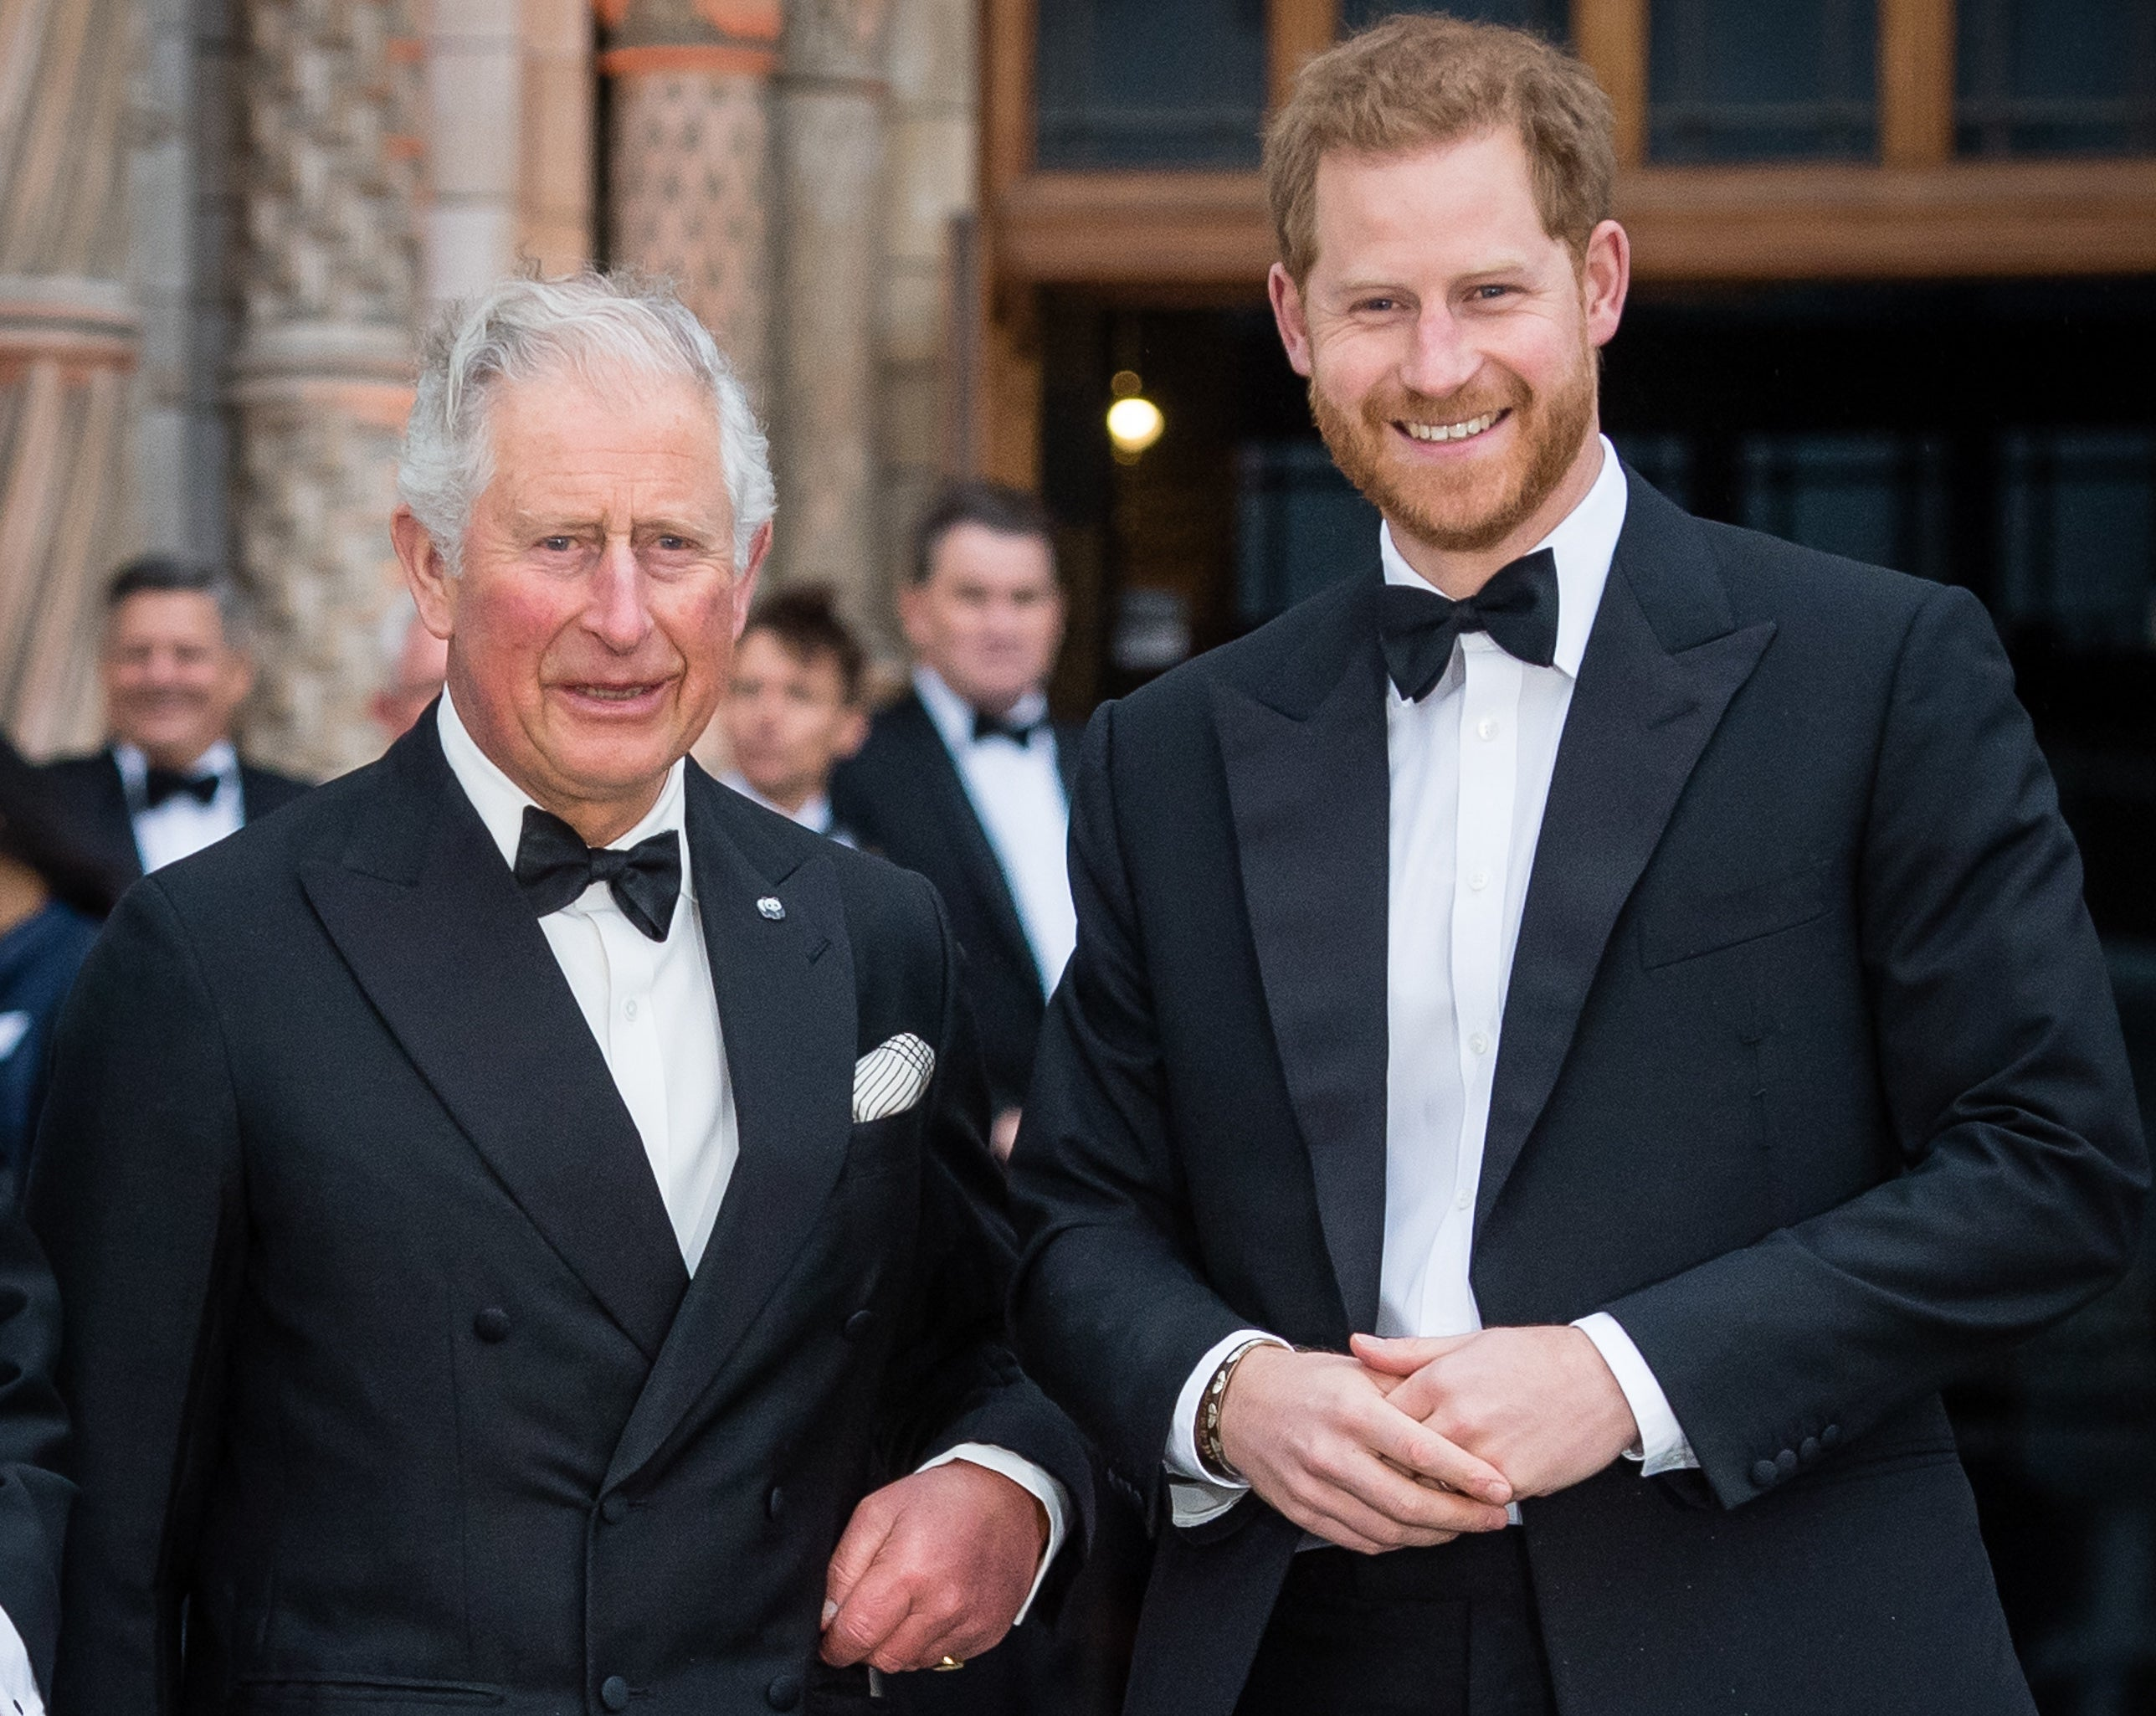 Harry stands next to his father, Prince Charles, during a black tie event